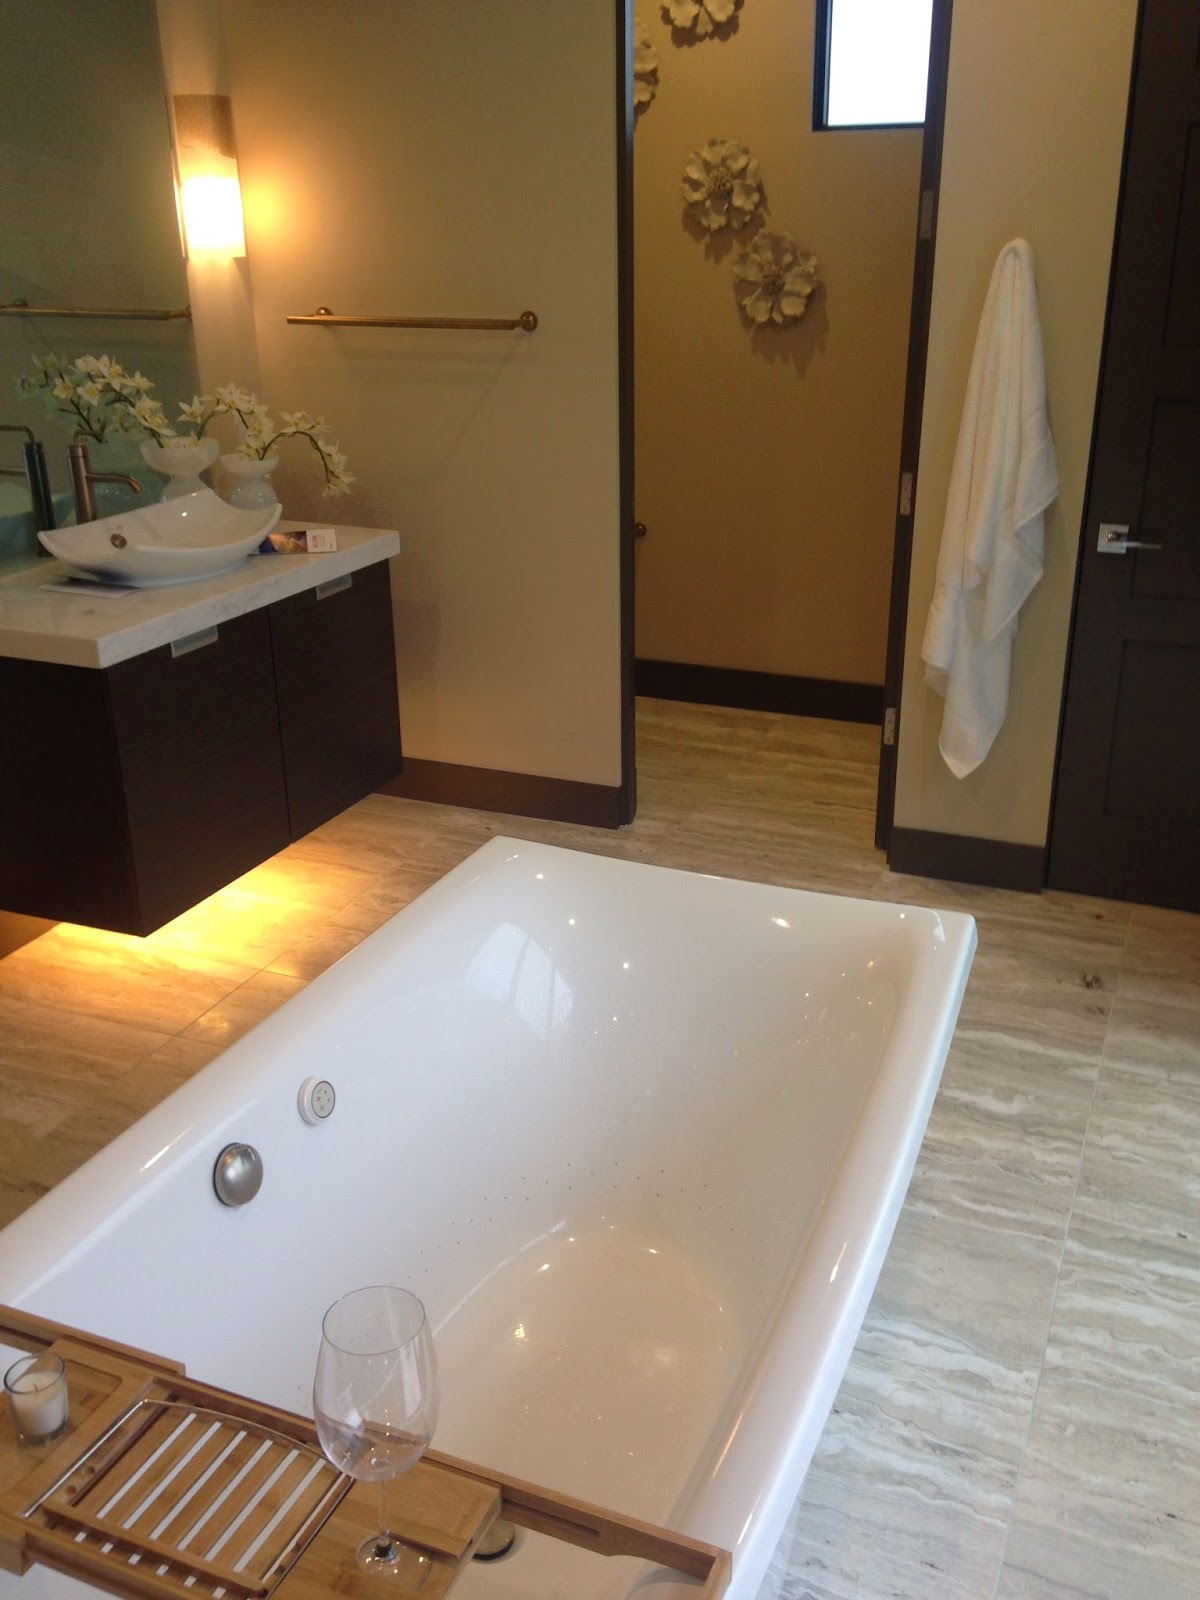 International builders show 2015, New american home master bath